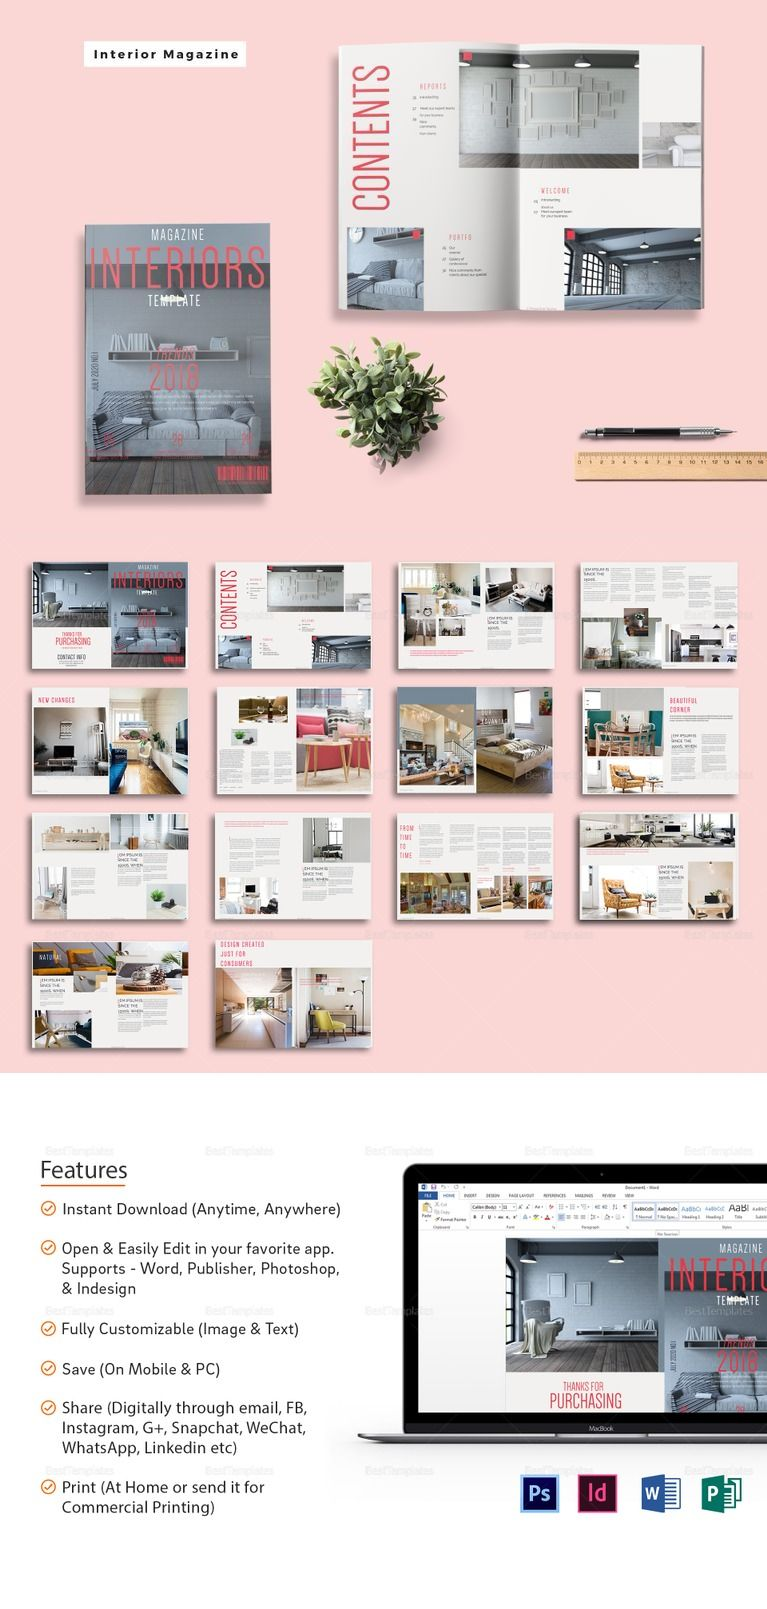 interior magazine template  ❱❱ magazine templates  easy to edit . showcase your interior design concepts to your clients with this easy toedit magazine template